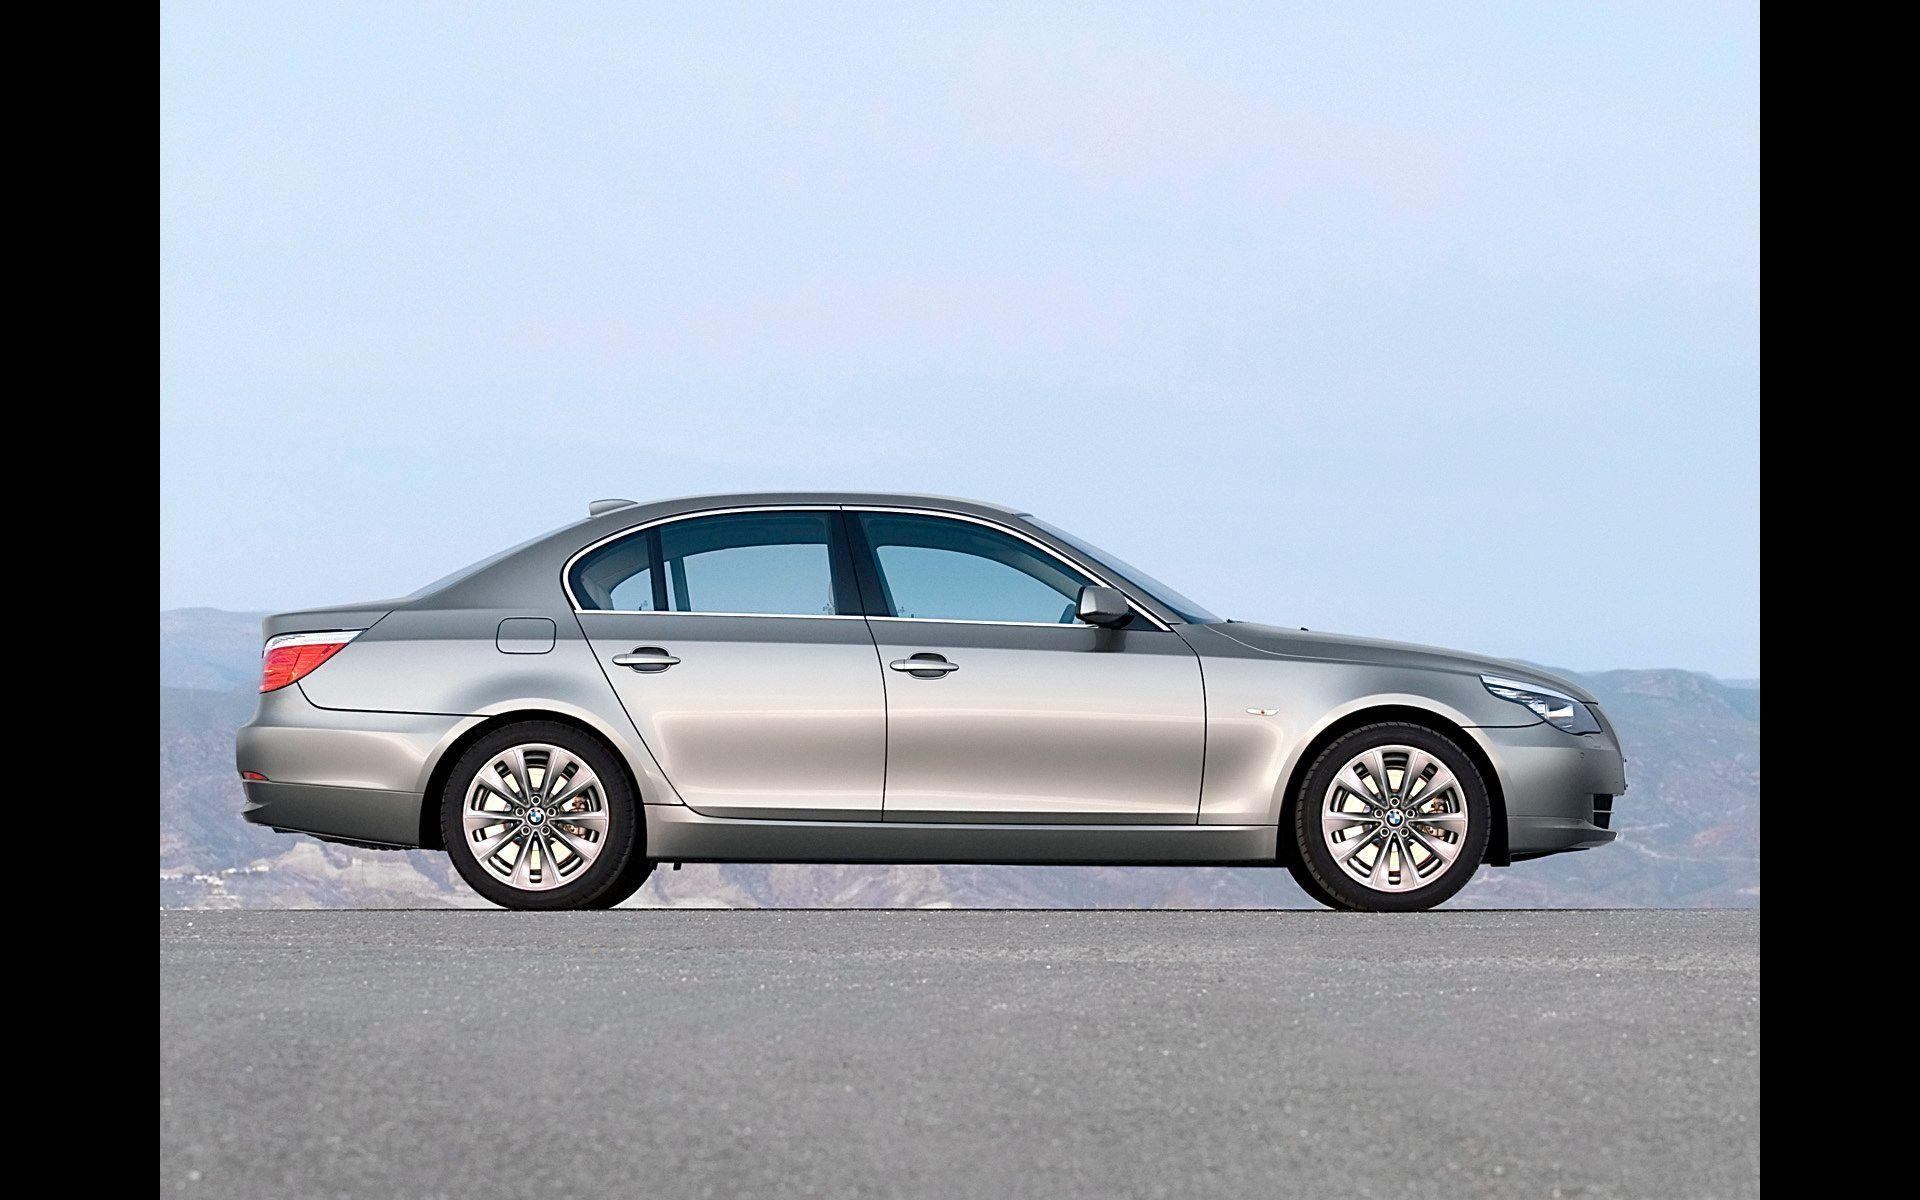 2008 BMW 5 Series Wallpaper 12 - 1920x1200